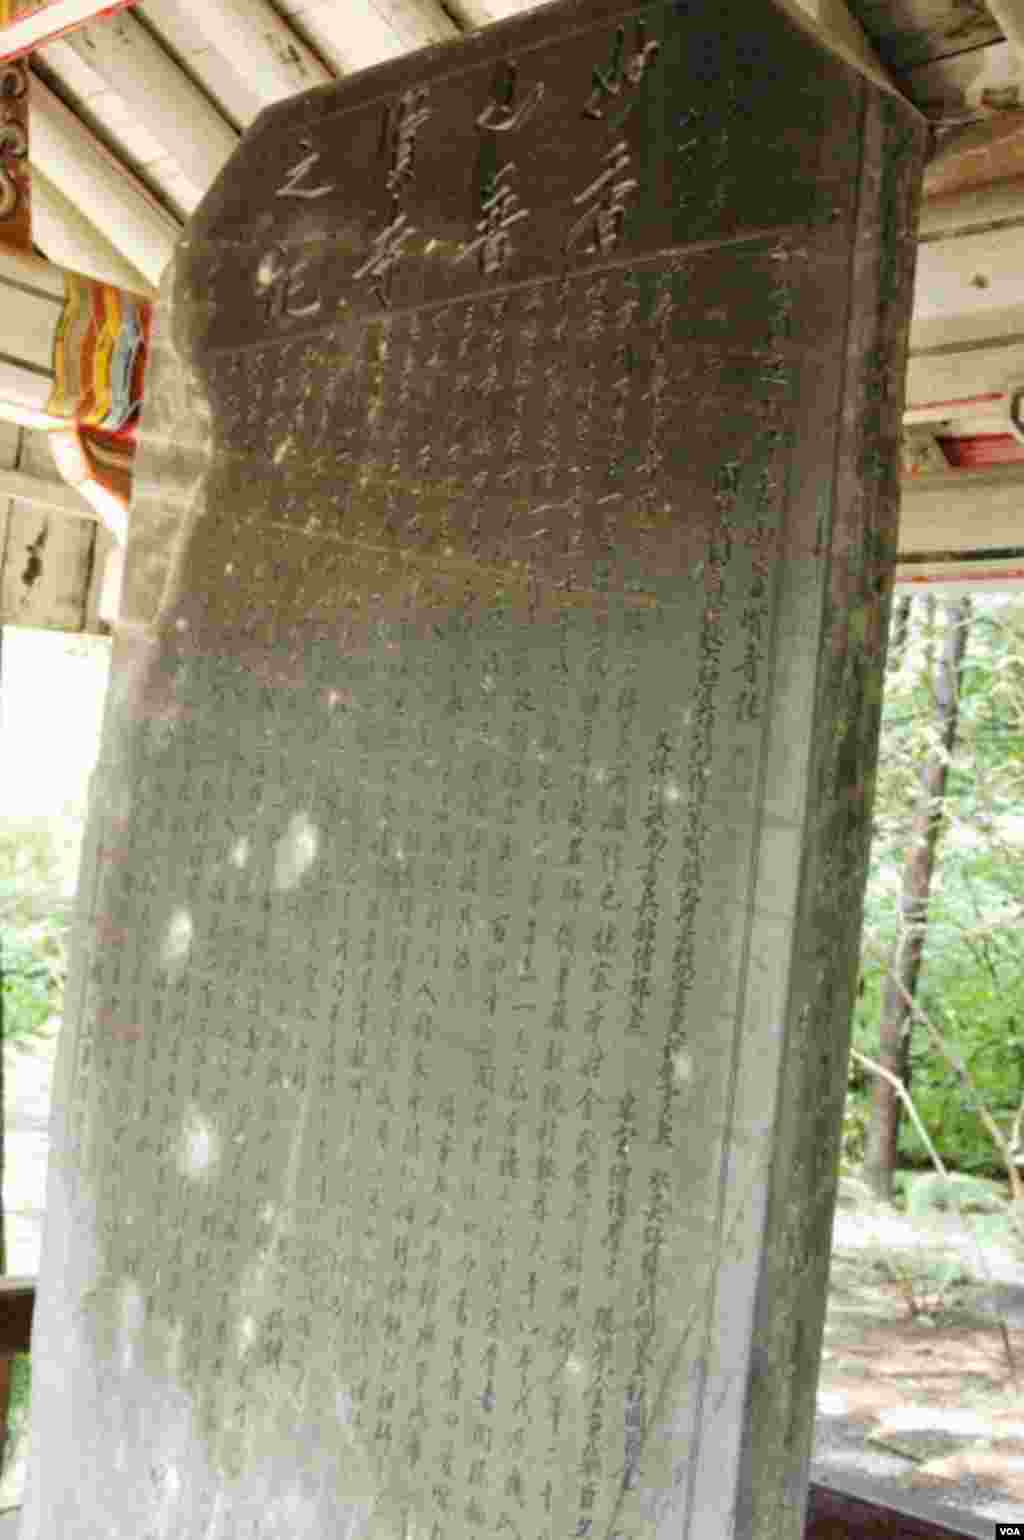 Tour guides claim the bullet marks in this ancient tablet are from U.S. aircraft during the Korean War, Hyangsan, North Korea, July 24, 2013. (Steve Herman/VOA)